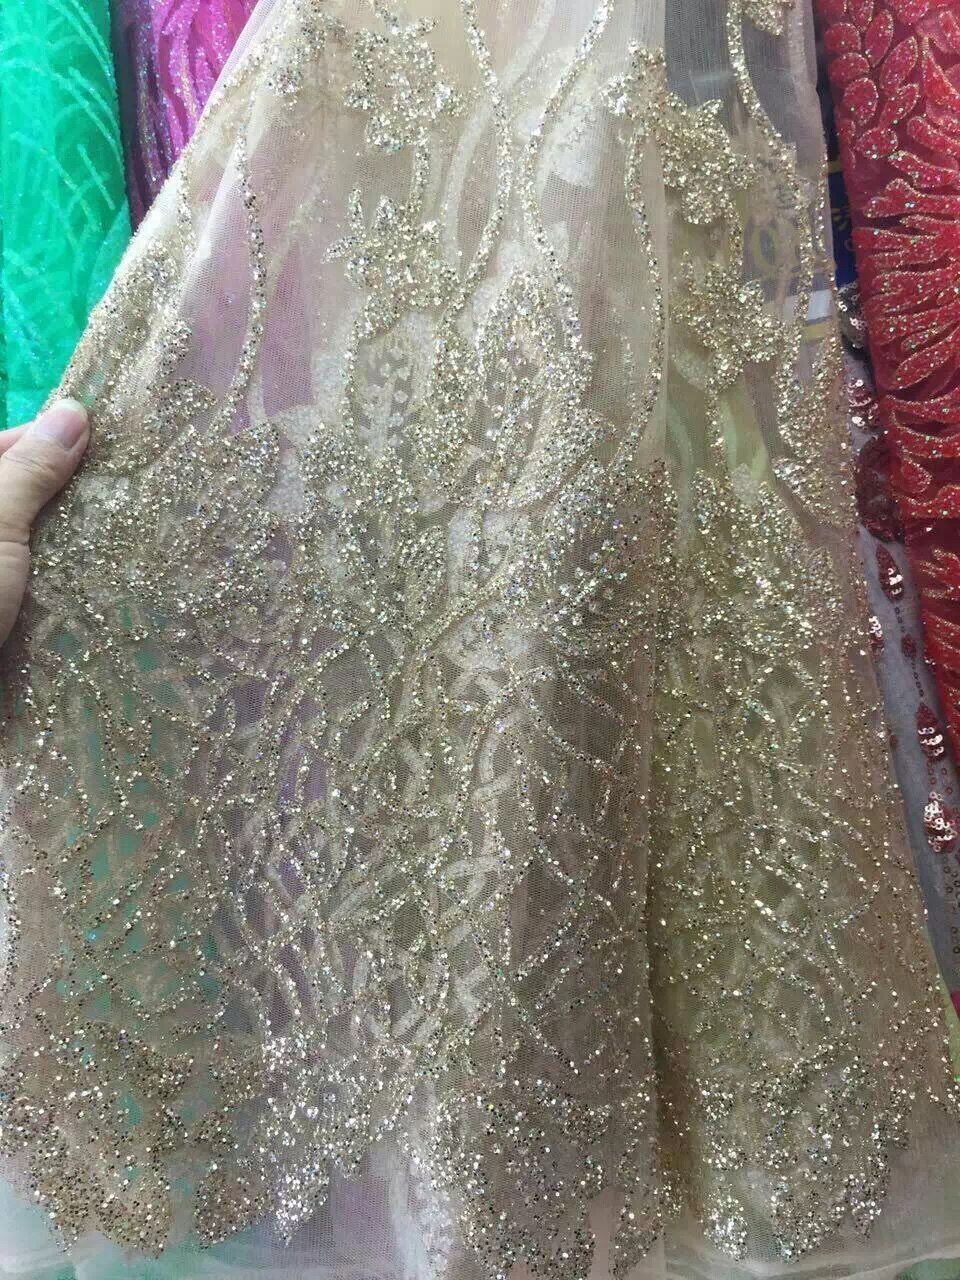 5yards Silver Gold hand print glitter african india tulle mesh fabric for  wedding dress evening dress party-in Lace from Home   Garden on  Aliexpress.com ... dbc3f3abdf63